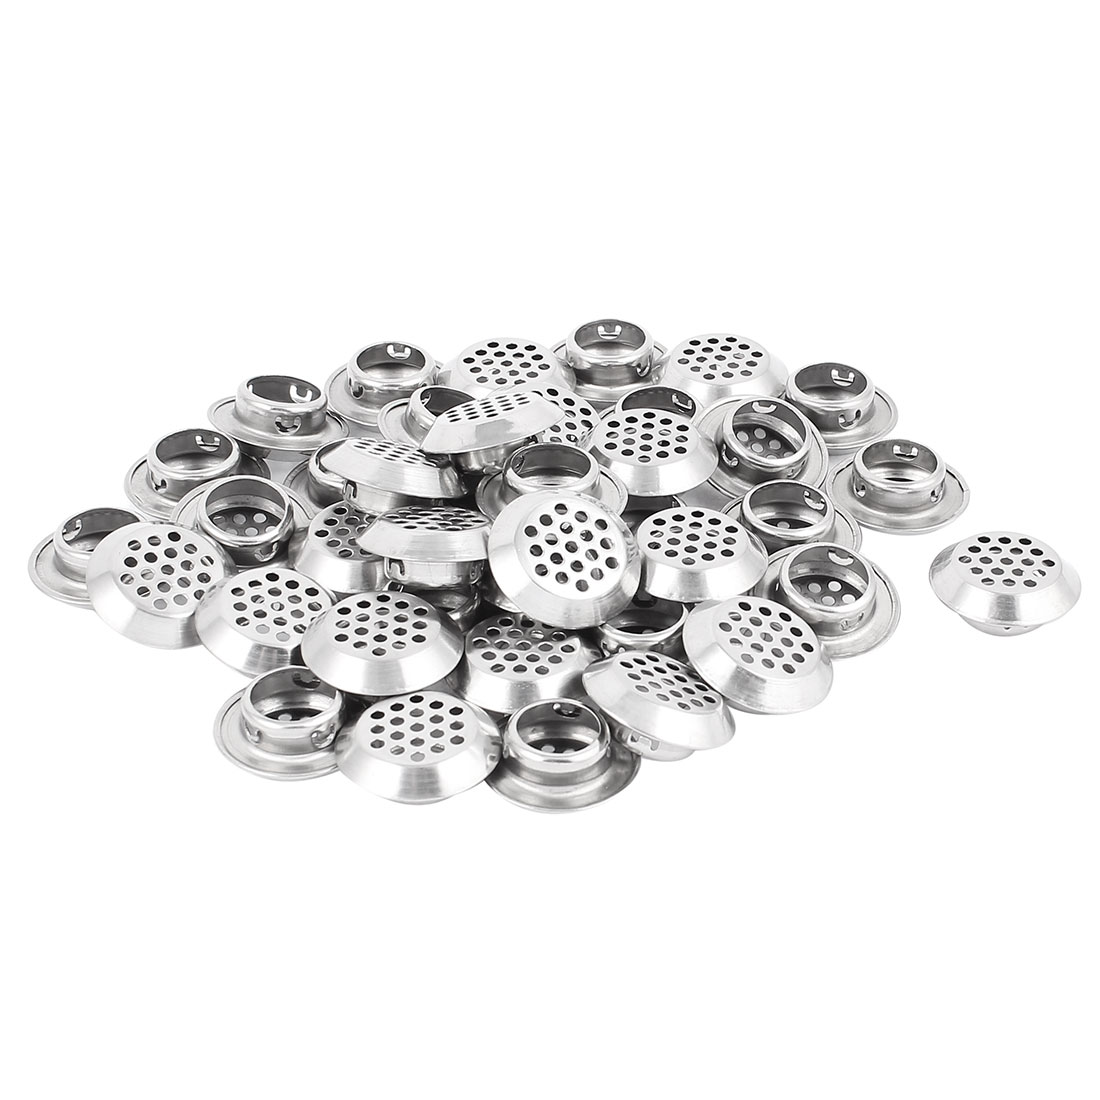 19mm Bottom Dia Round Panel Shoes Cupboard Cabinet Air Vent Louver Cover 40pcs